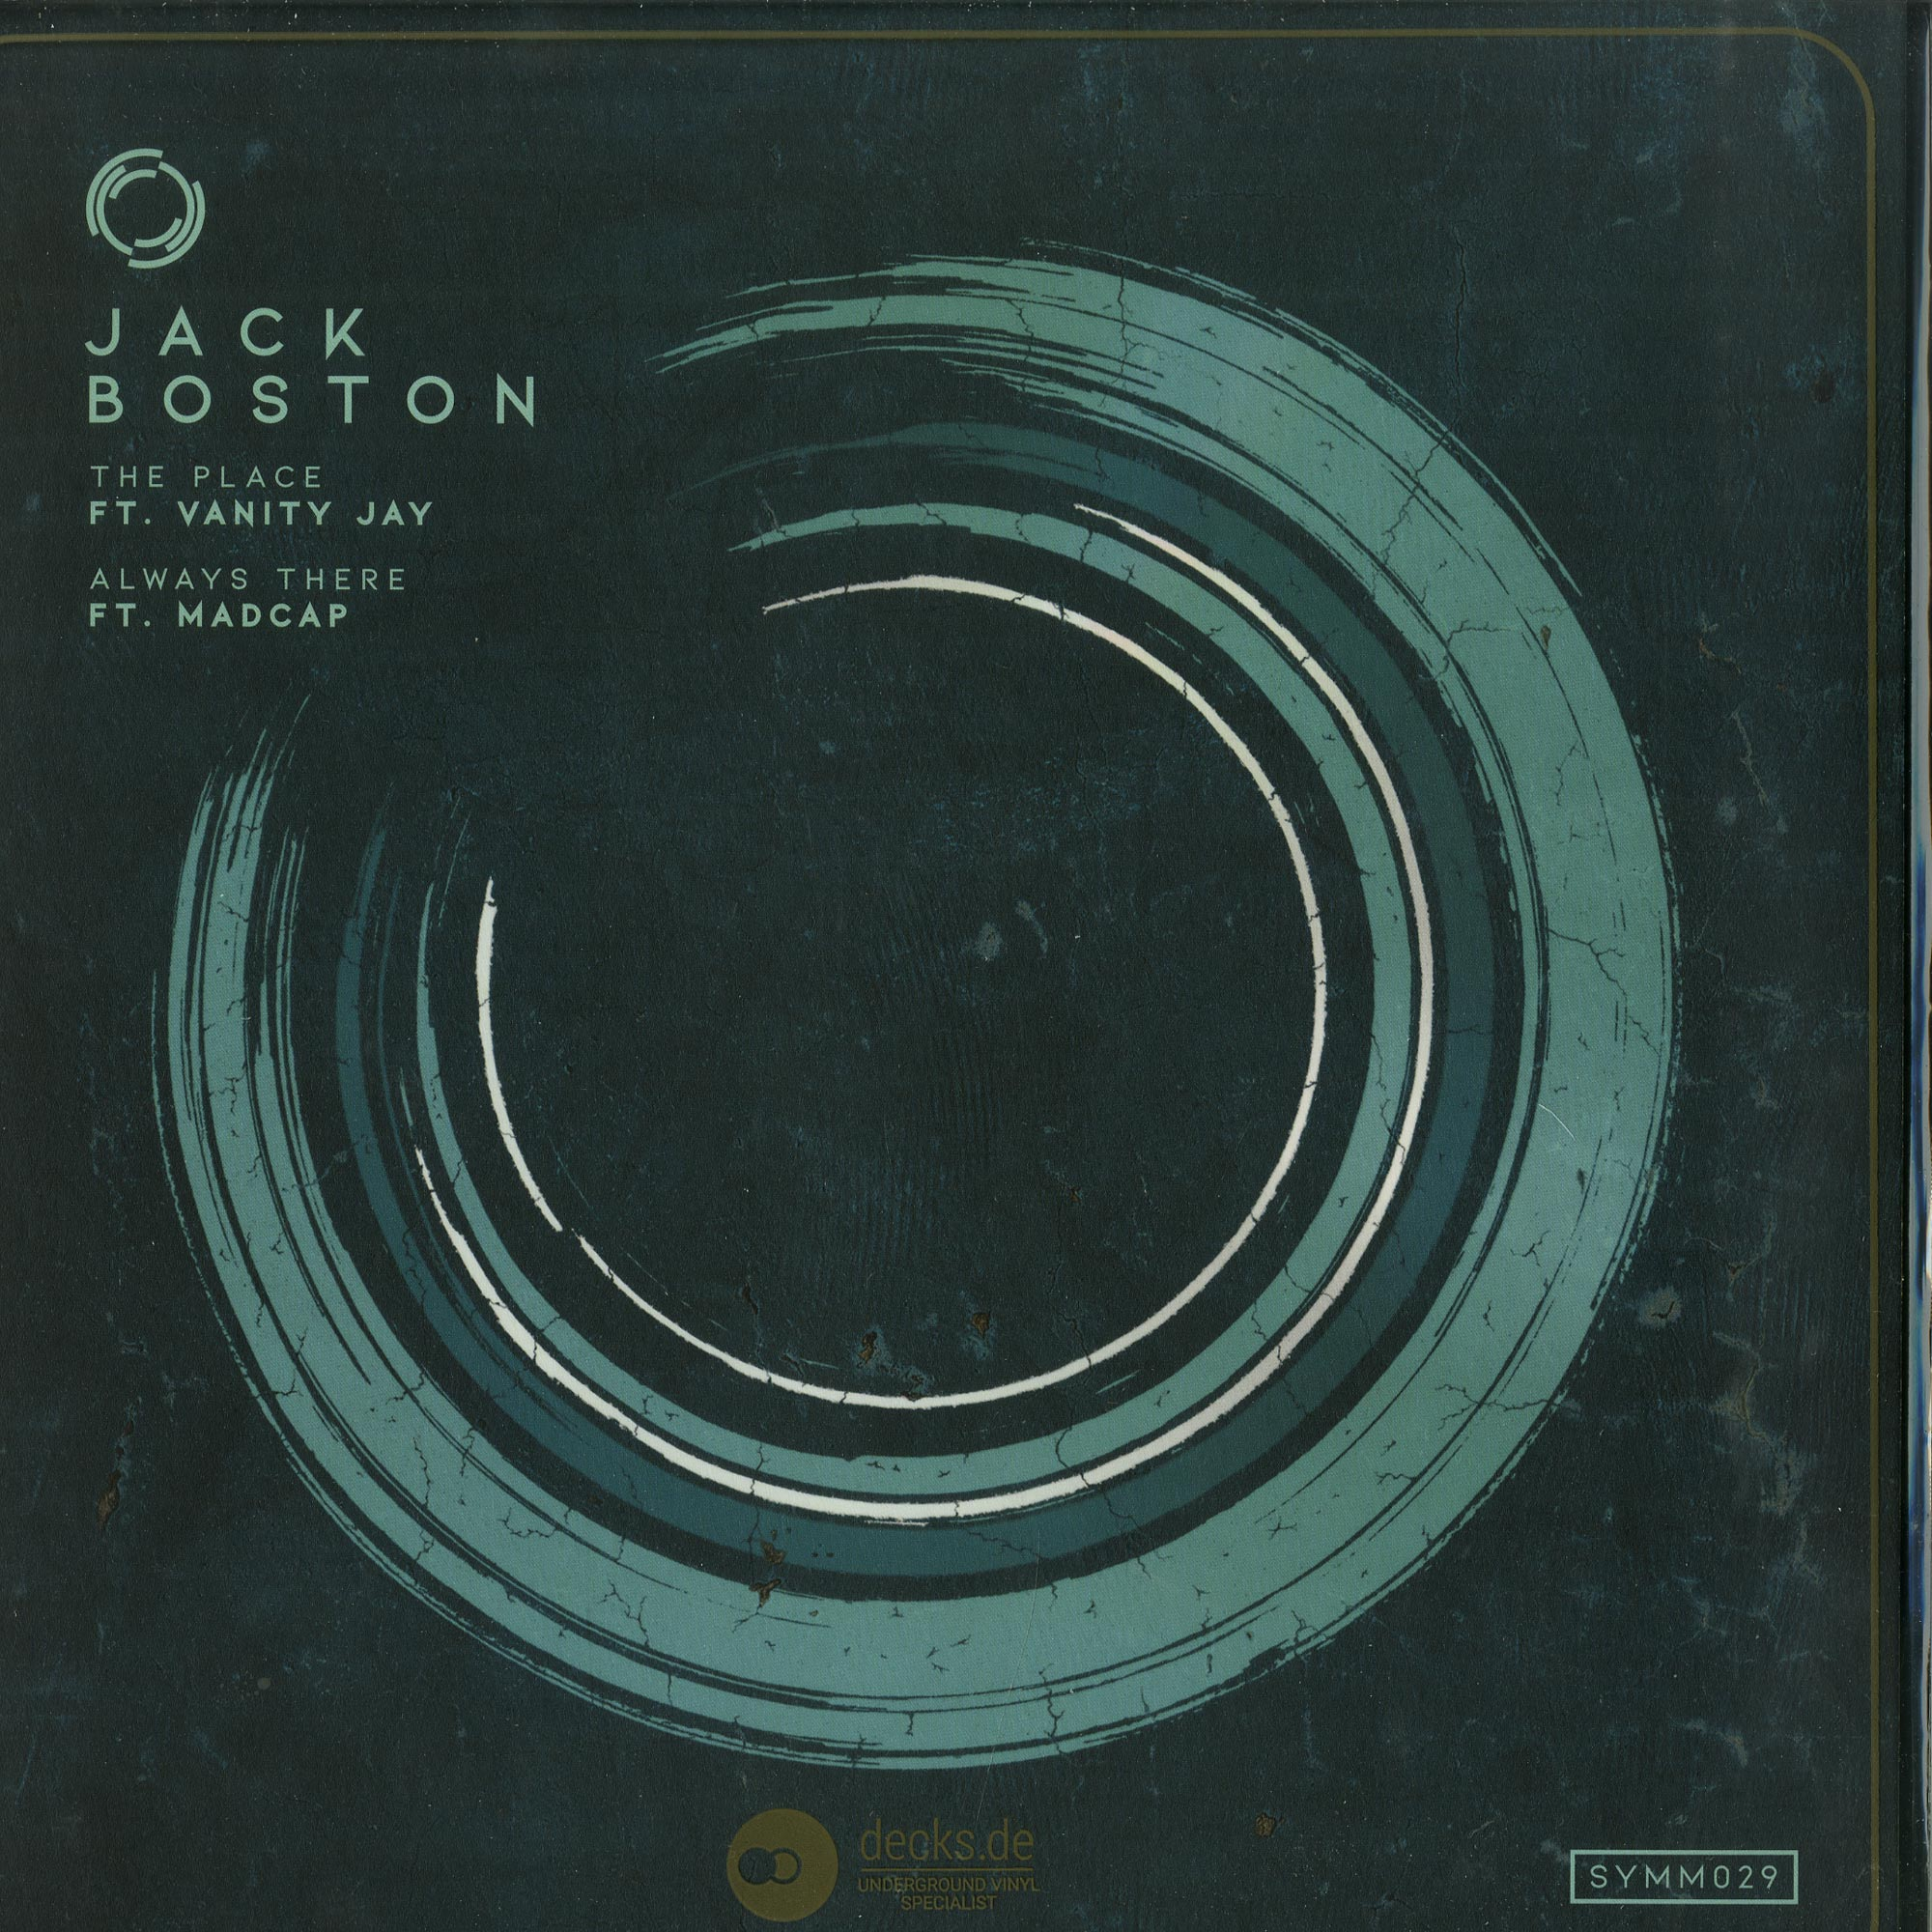 Jack Boston - THE PLACE / ALWAYS THERE